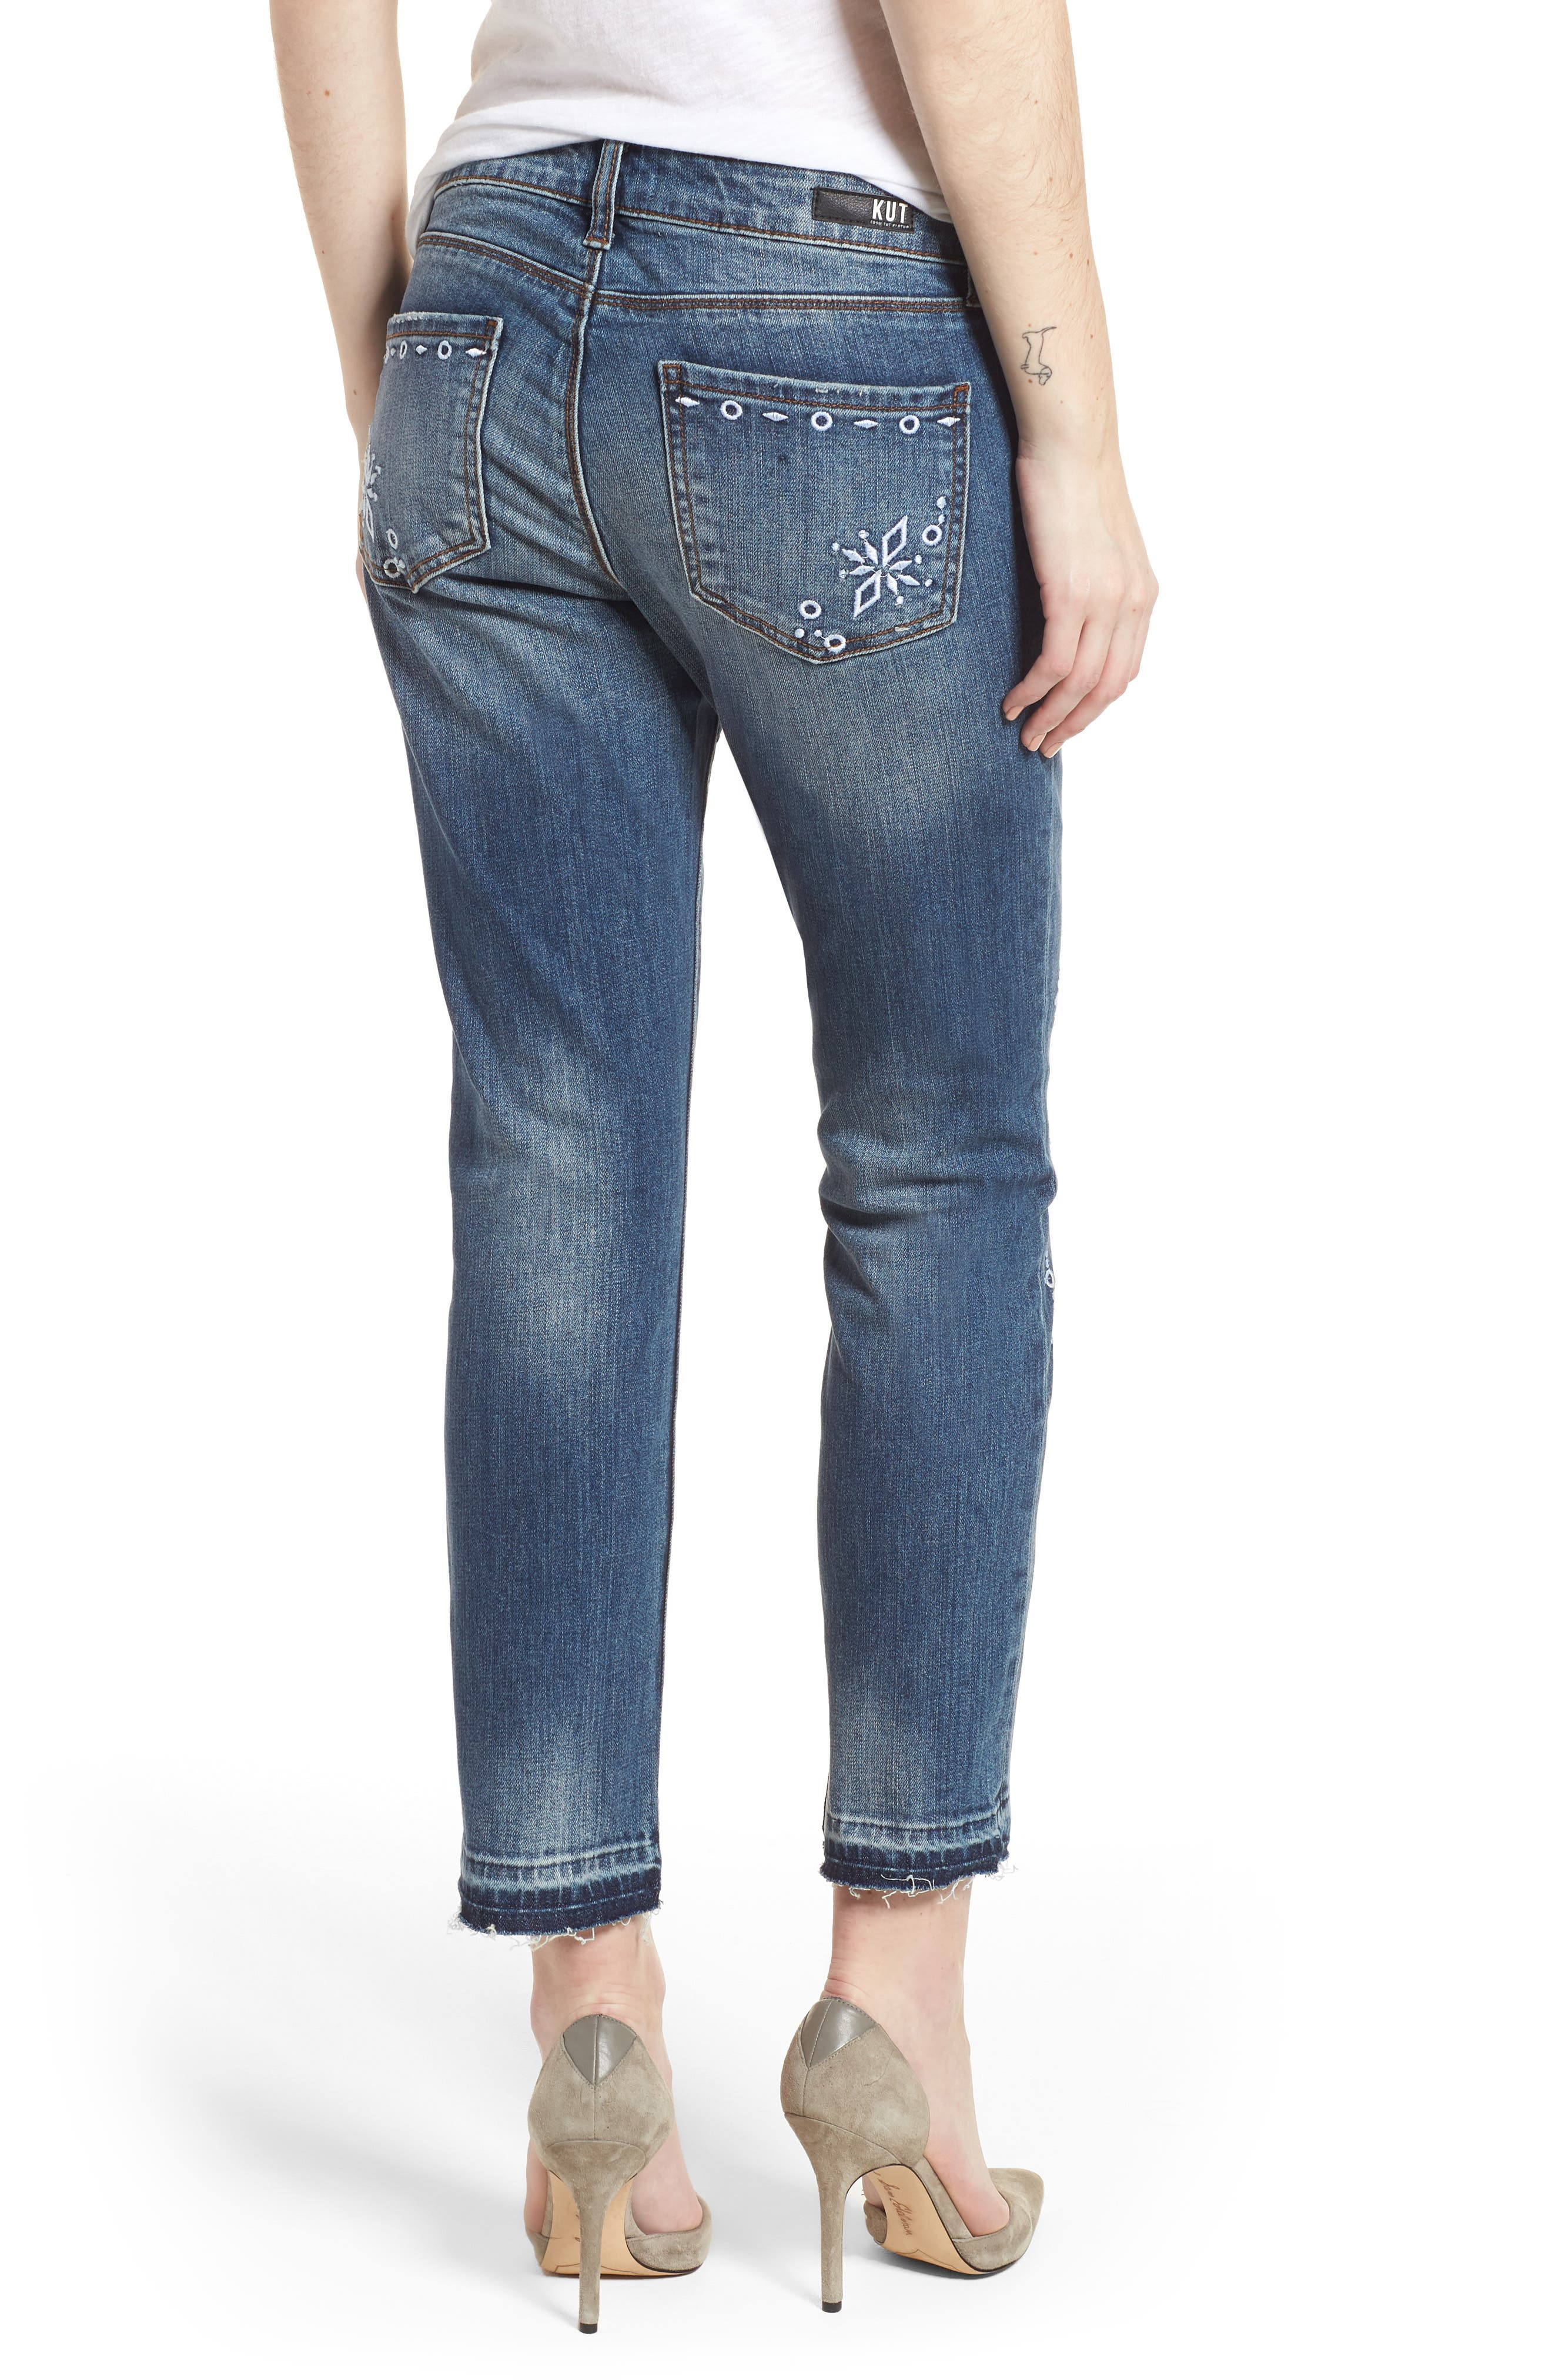 Reese Release Hem Embroidered Jeans,                             Alternate thumbnail 2, color,                             400